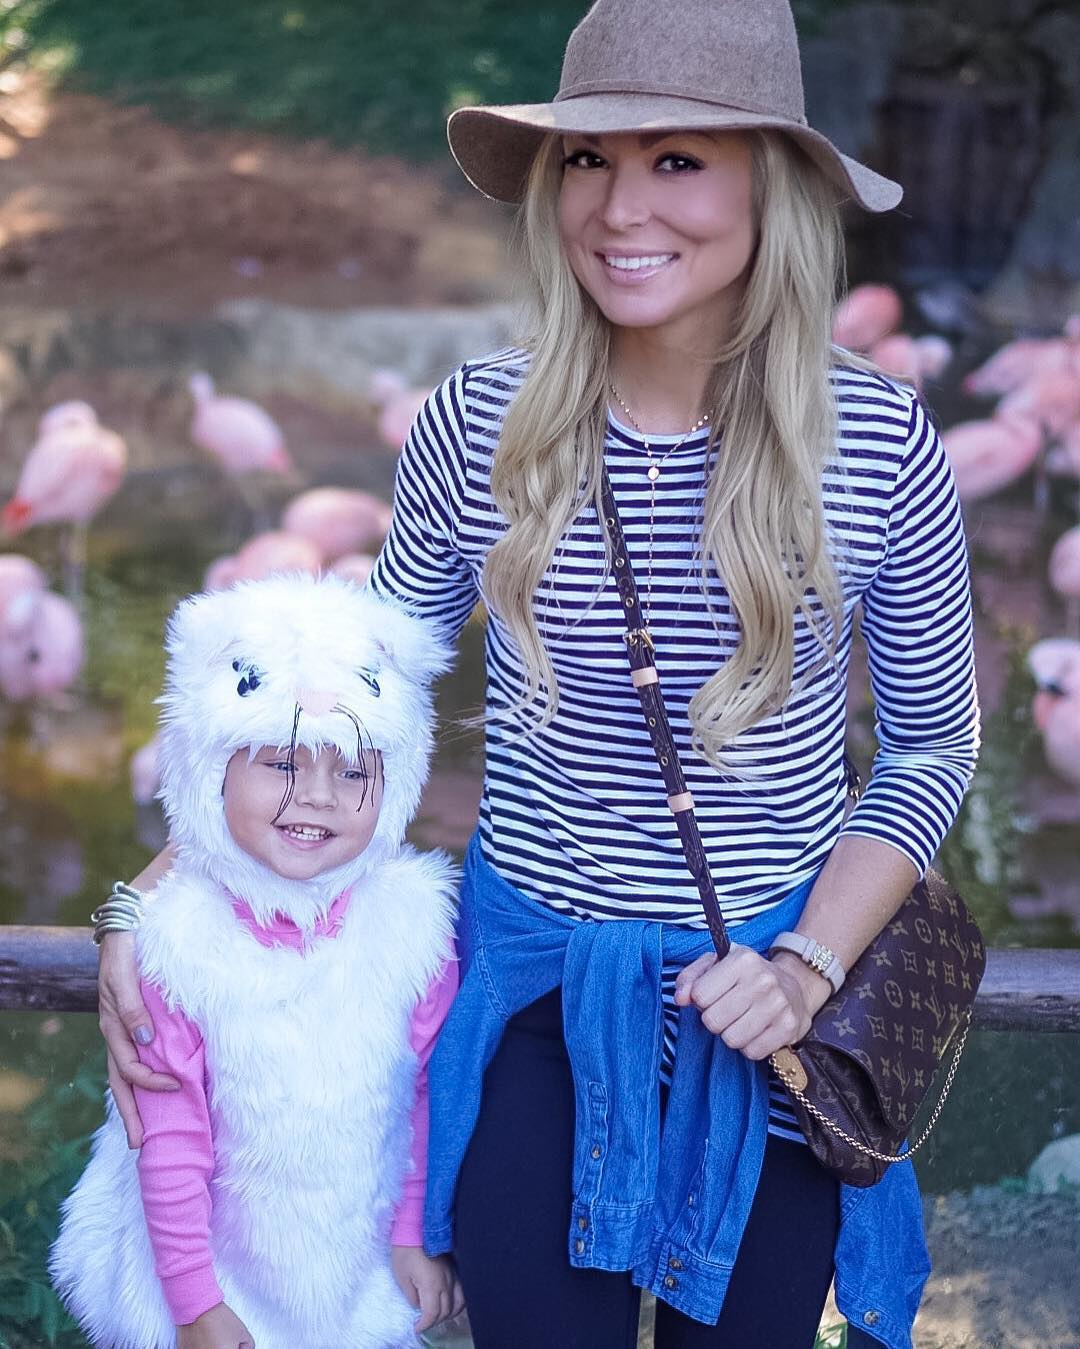 Boo @ the Zoo with this pretty kitty! http://liketk.it/2prsd @liketoknow.it #sundayfunday #ootd #wiw #momlife #lifewithblove #liketkitunder50